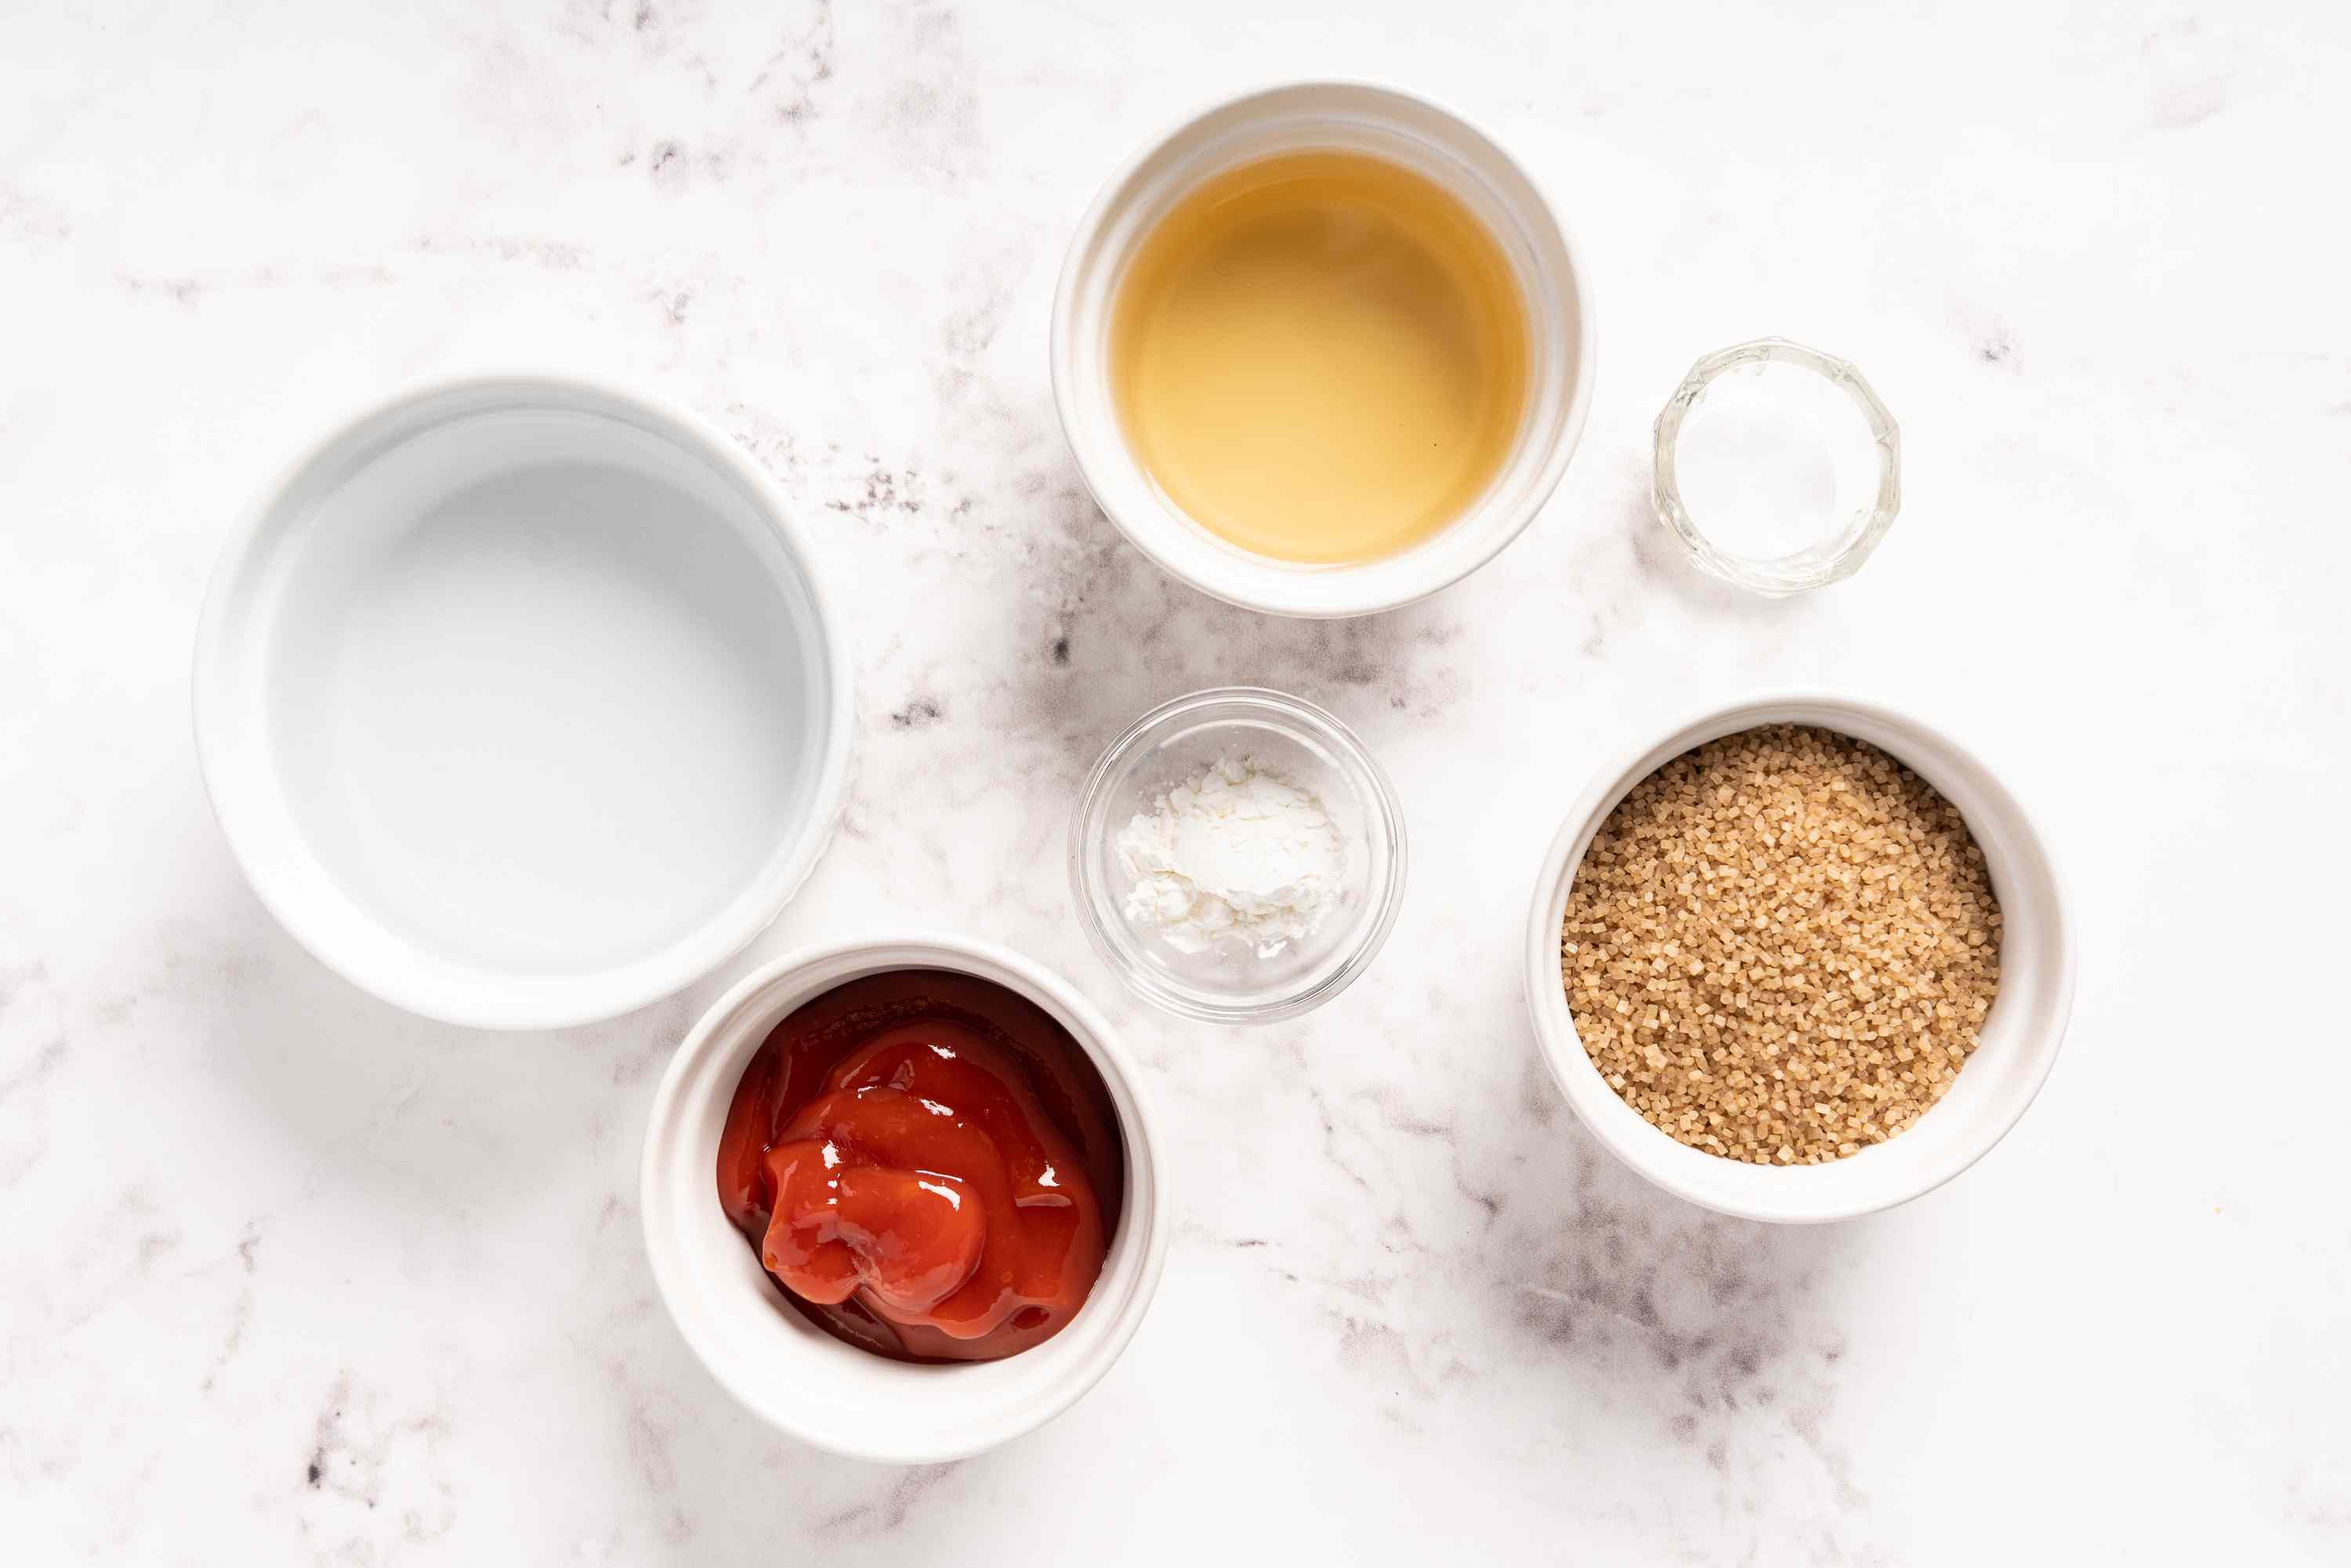 Chinese Sweet and Sour Sauce ingredients